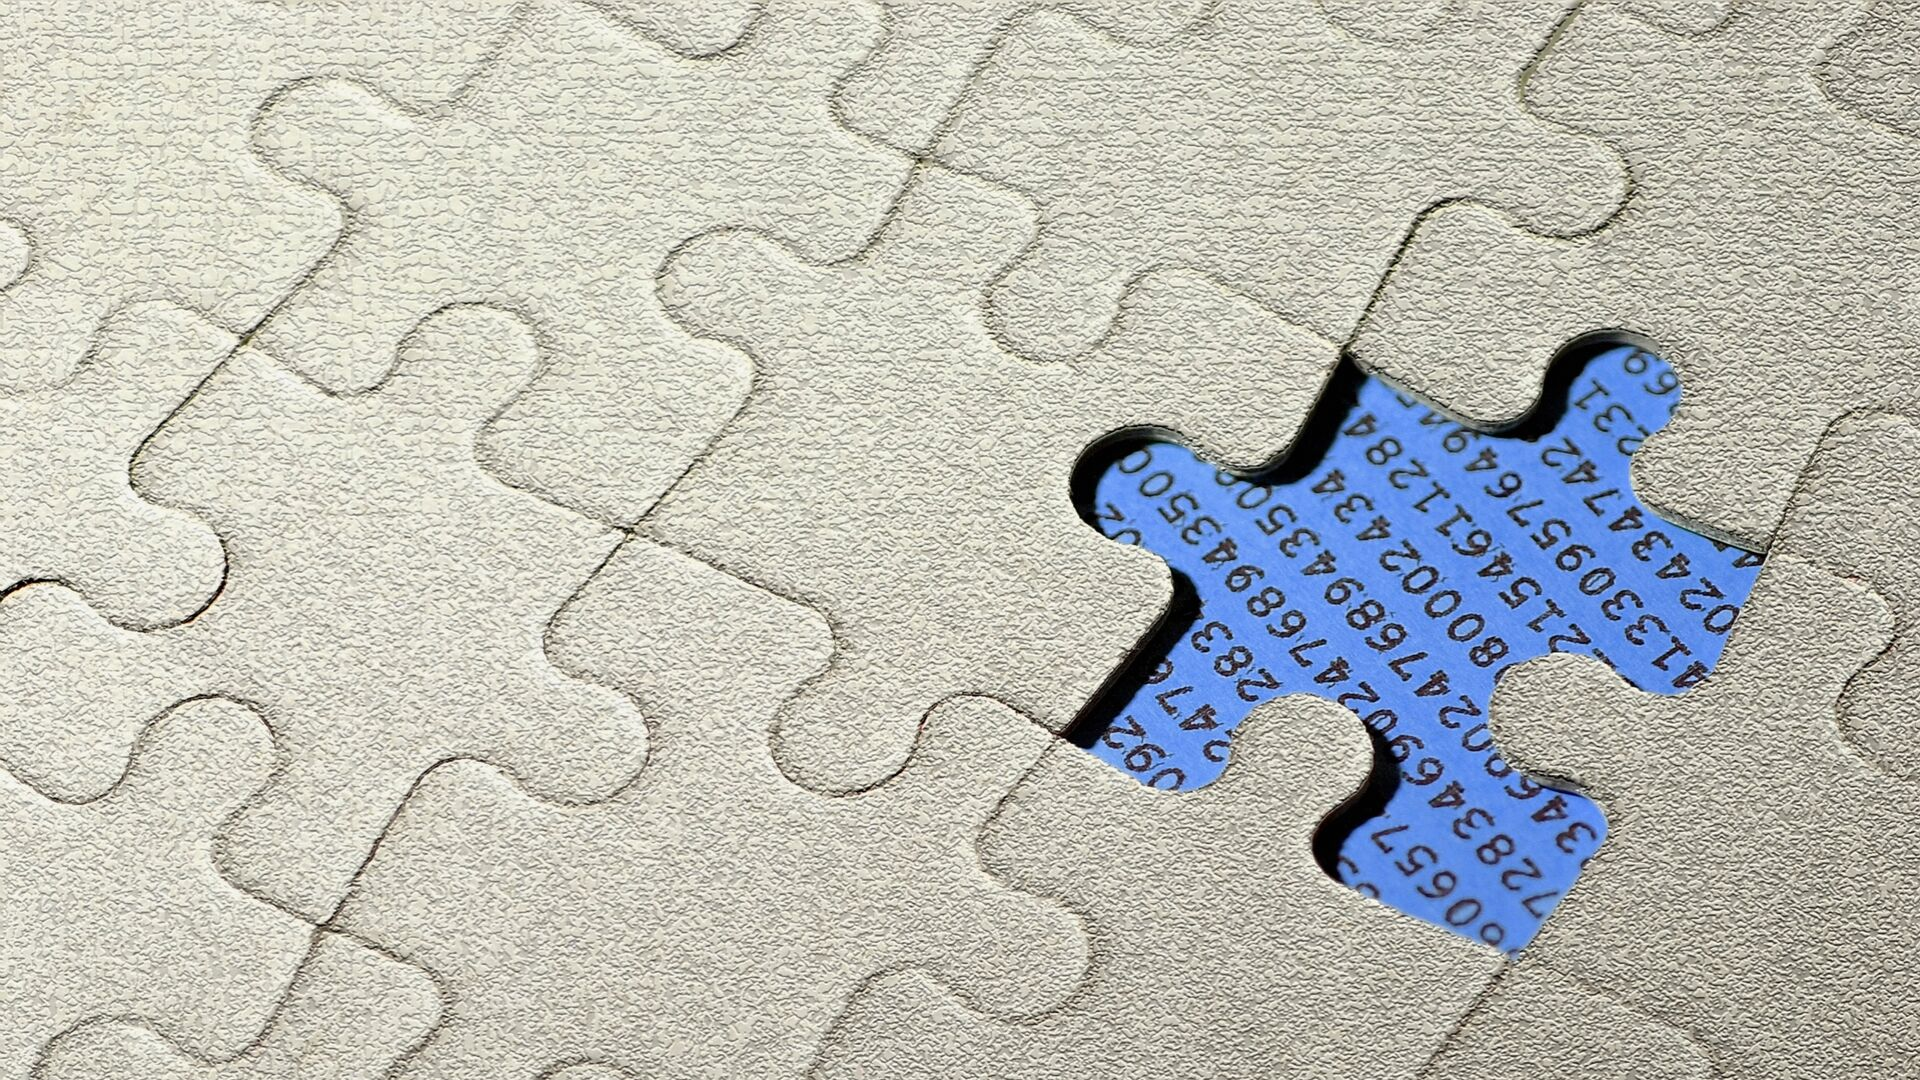 Image of a jigsaw with one piece missing